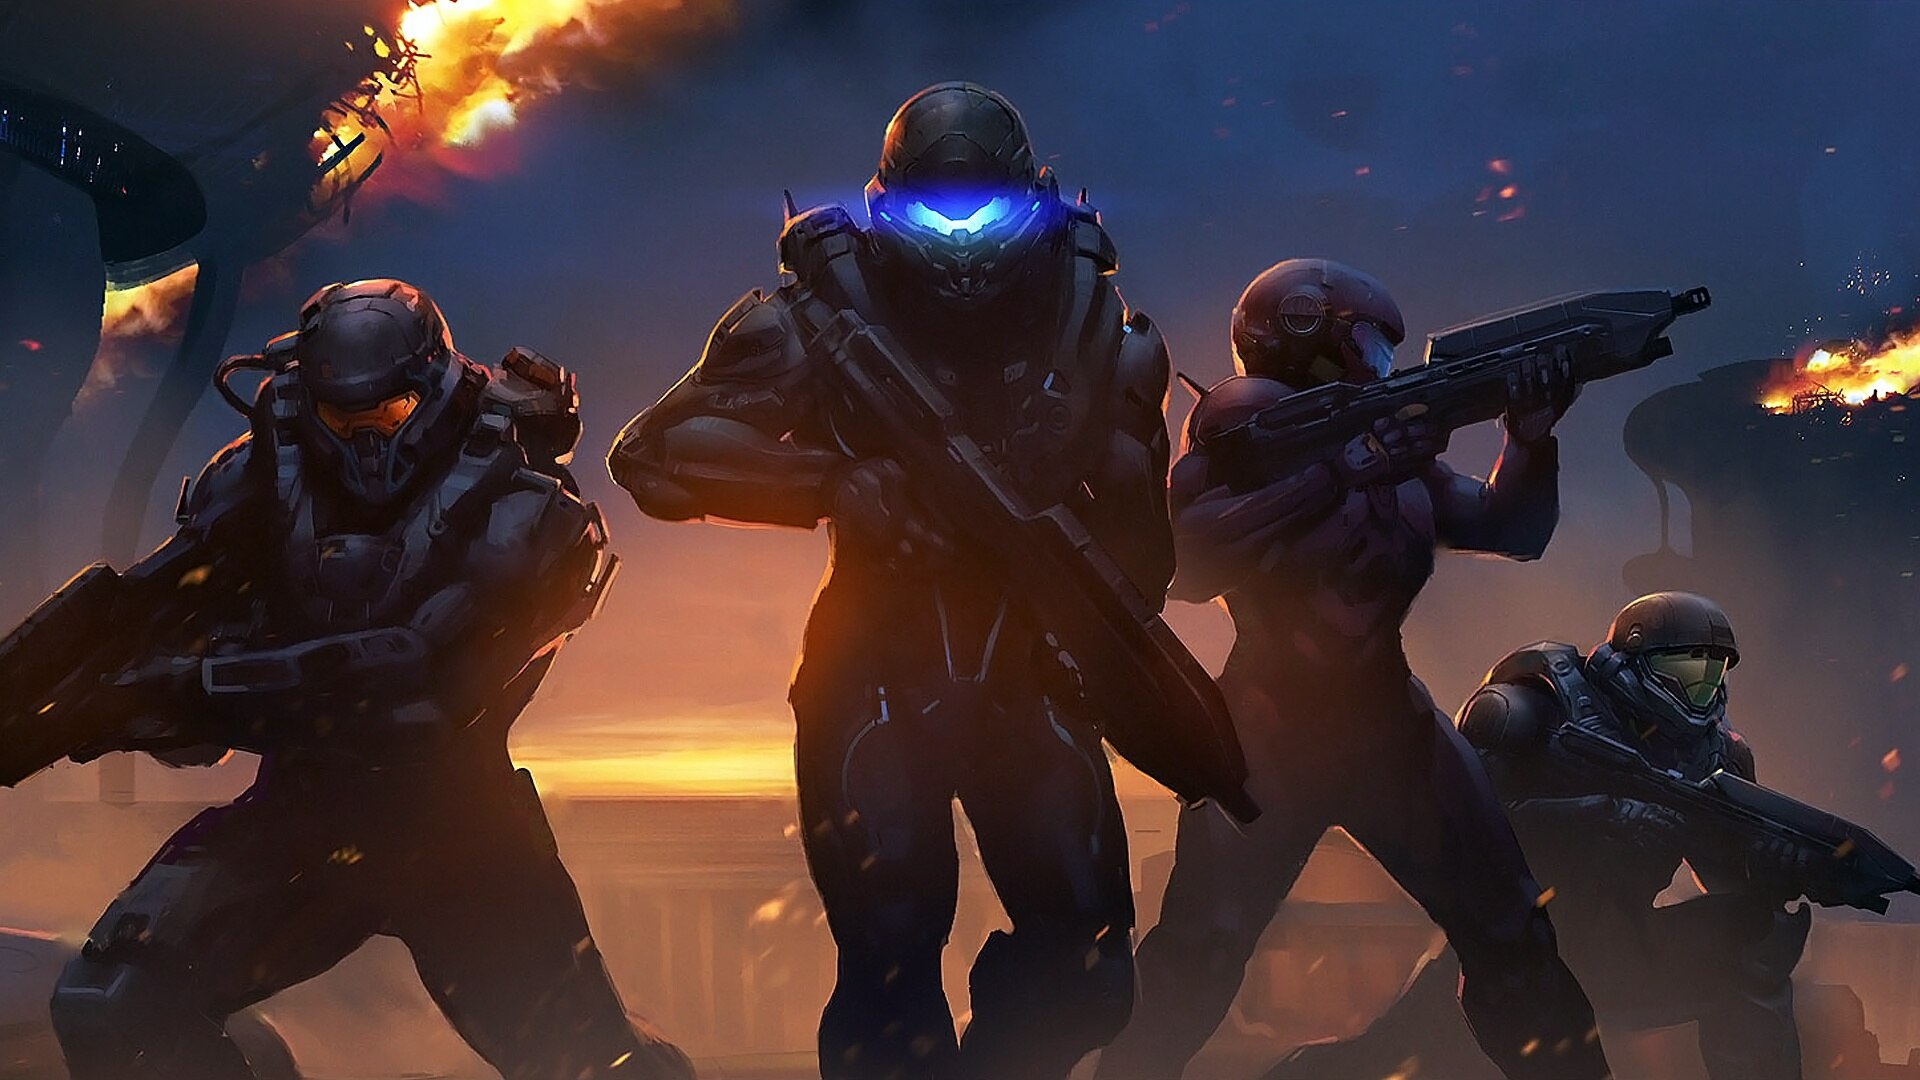 """There are """"no plans"""" to bring Halo 5 to PC"""